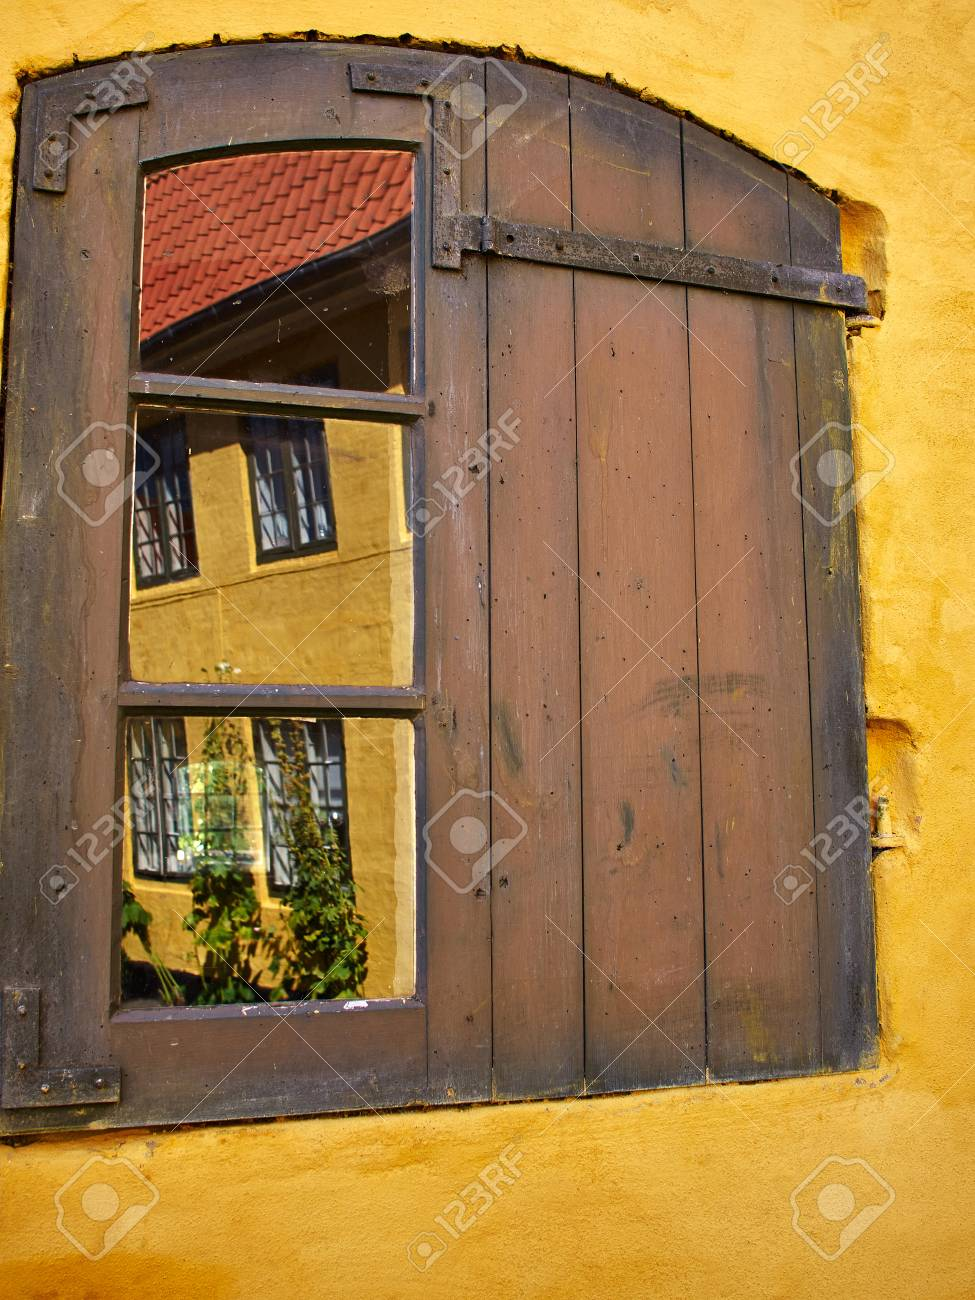 Rustic Window With Wooden Exterior Shutters On A Yellow Painted